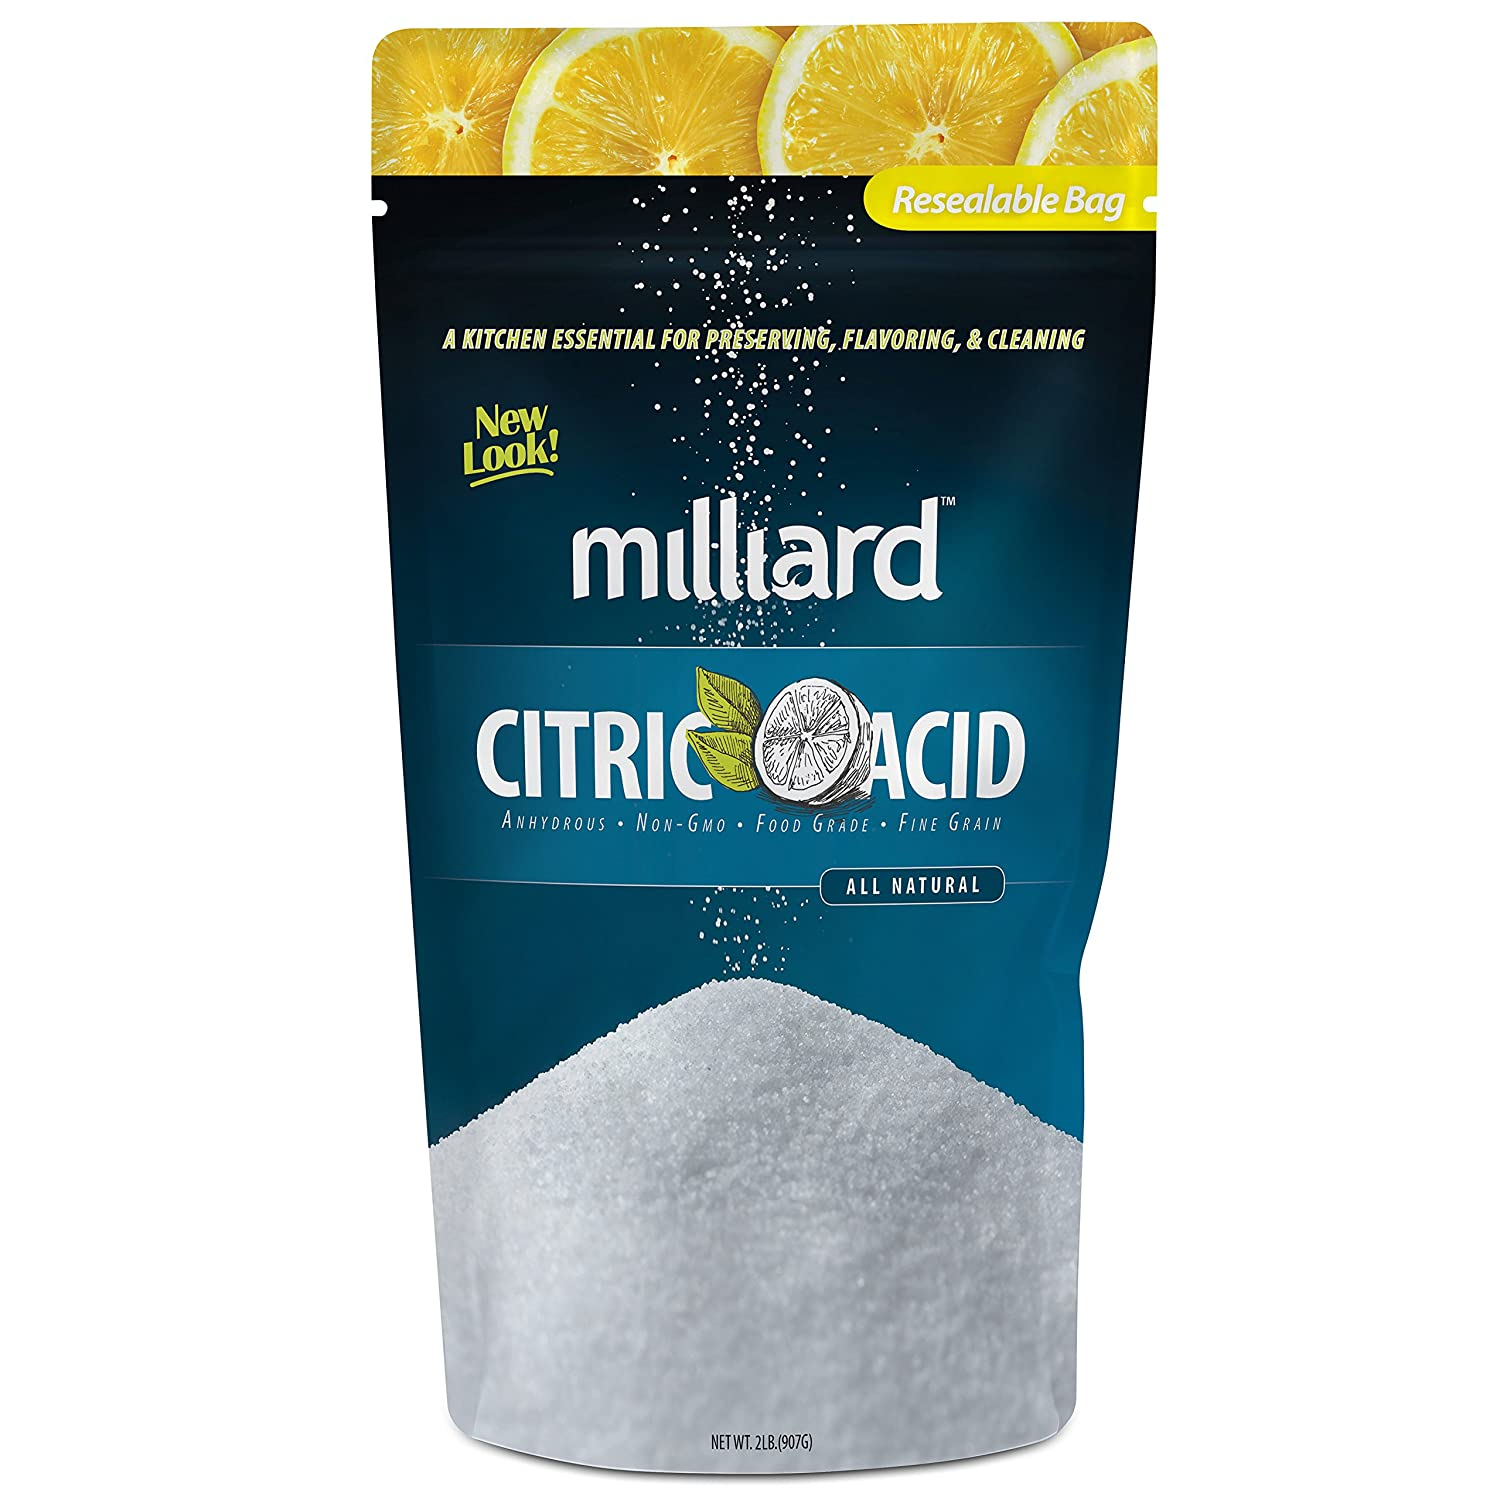 Milliard Citric Acid - 2 Pound - 100% Pure Food Grade NON-GMO